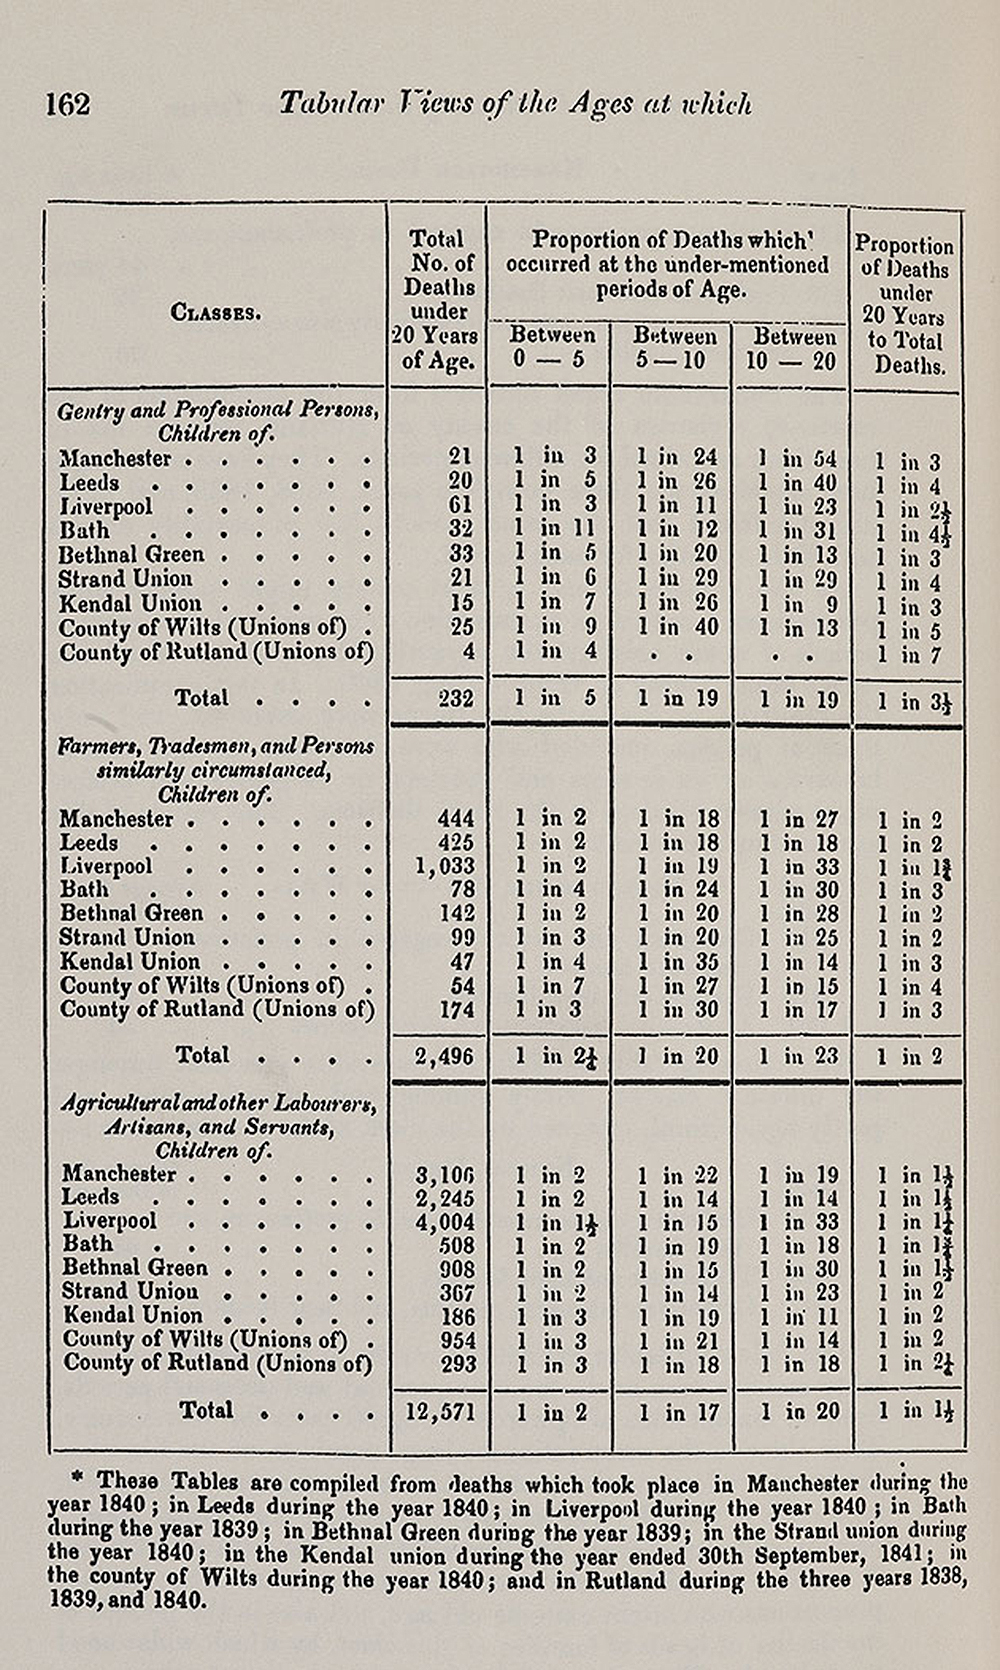 The ages at which death occurs in different classes, from Report on the Sanitary Conditions of the Labouring Population of Great Britain, by Edwin Chadwick, 1842. British Library.